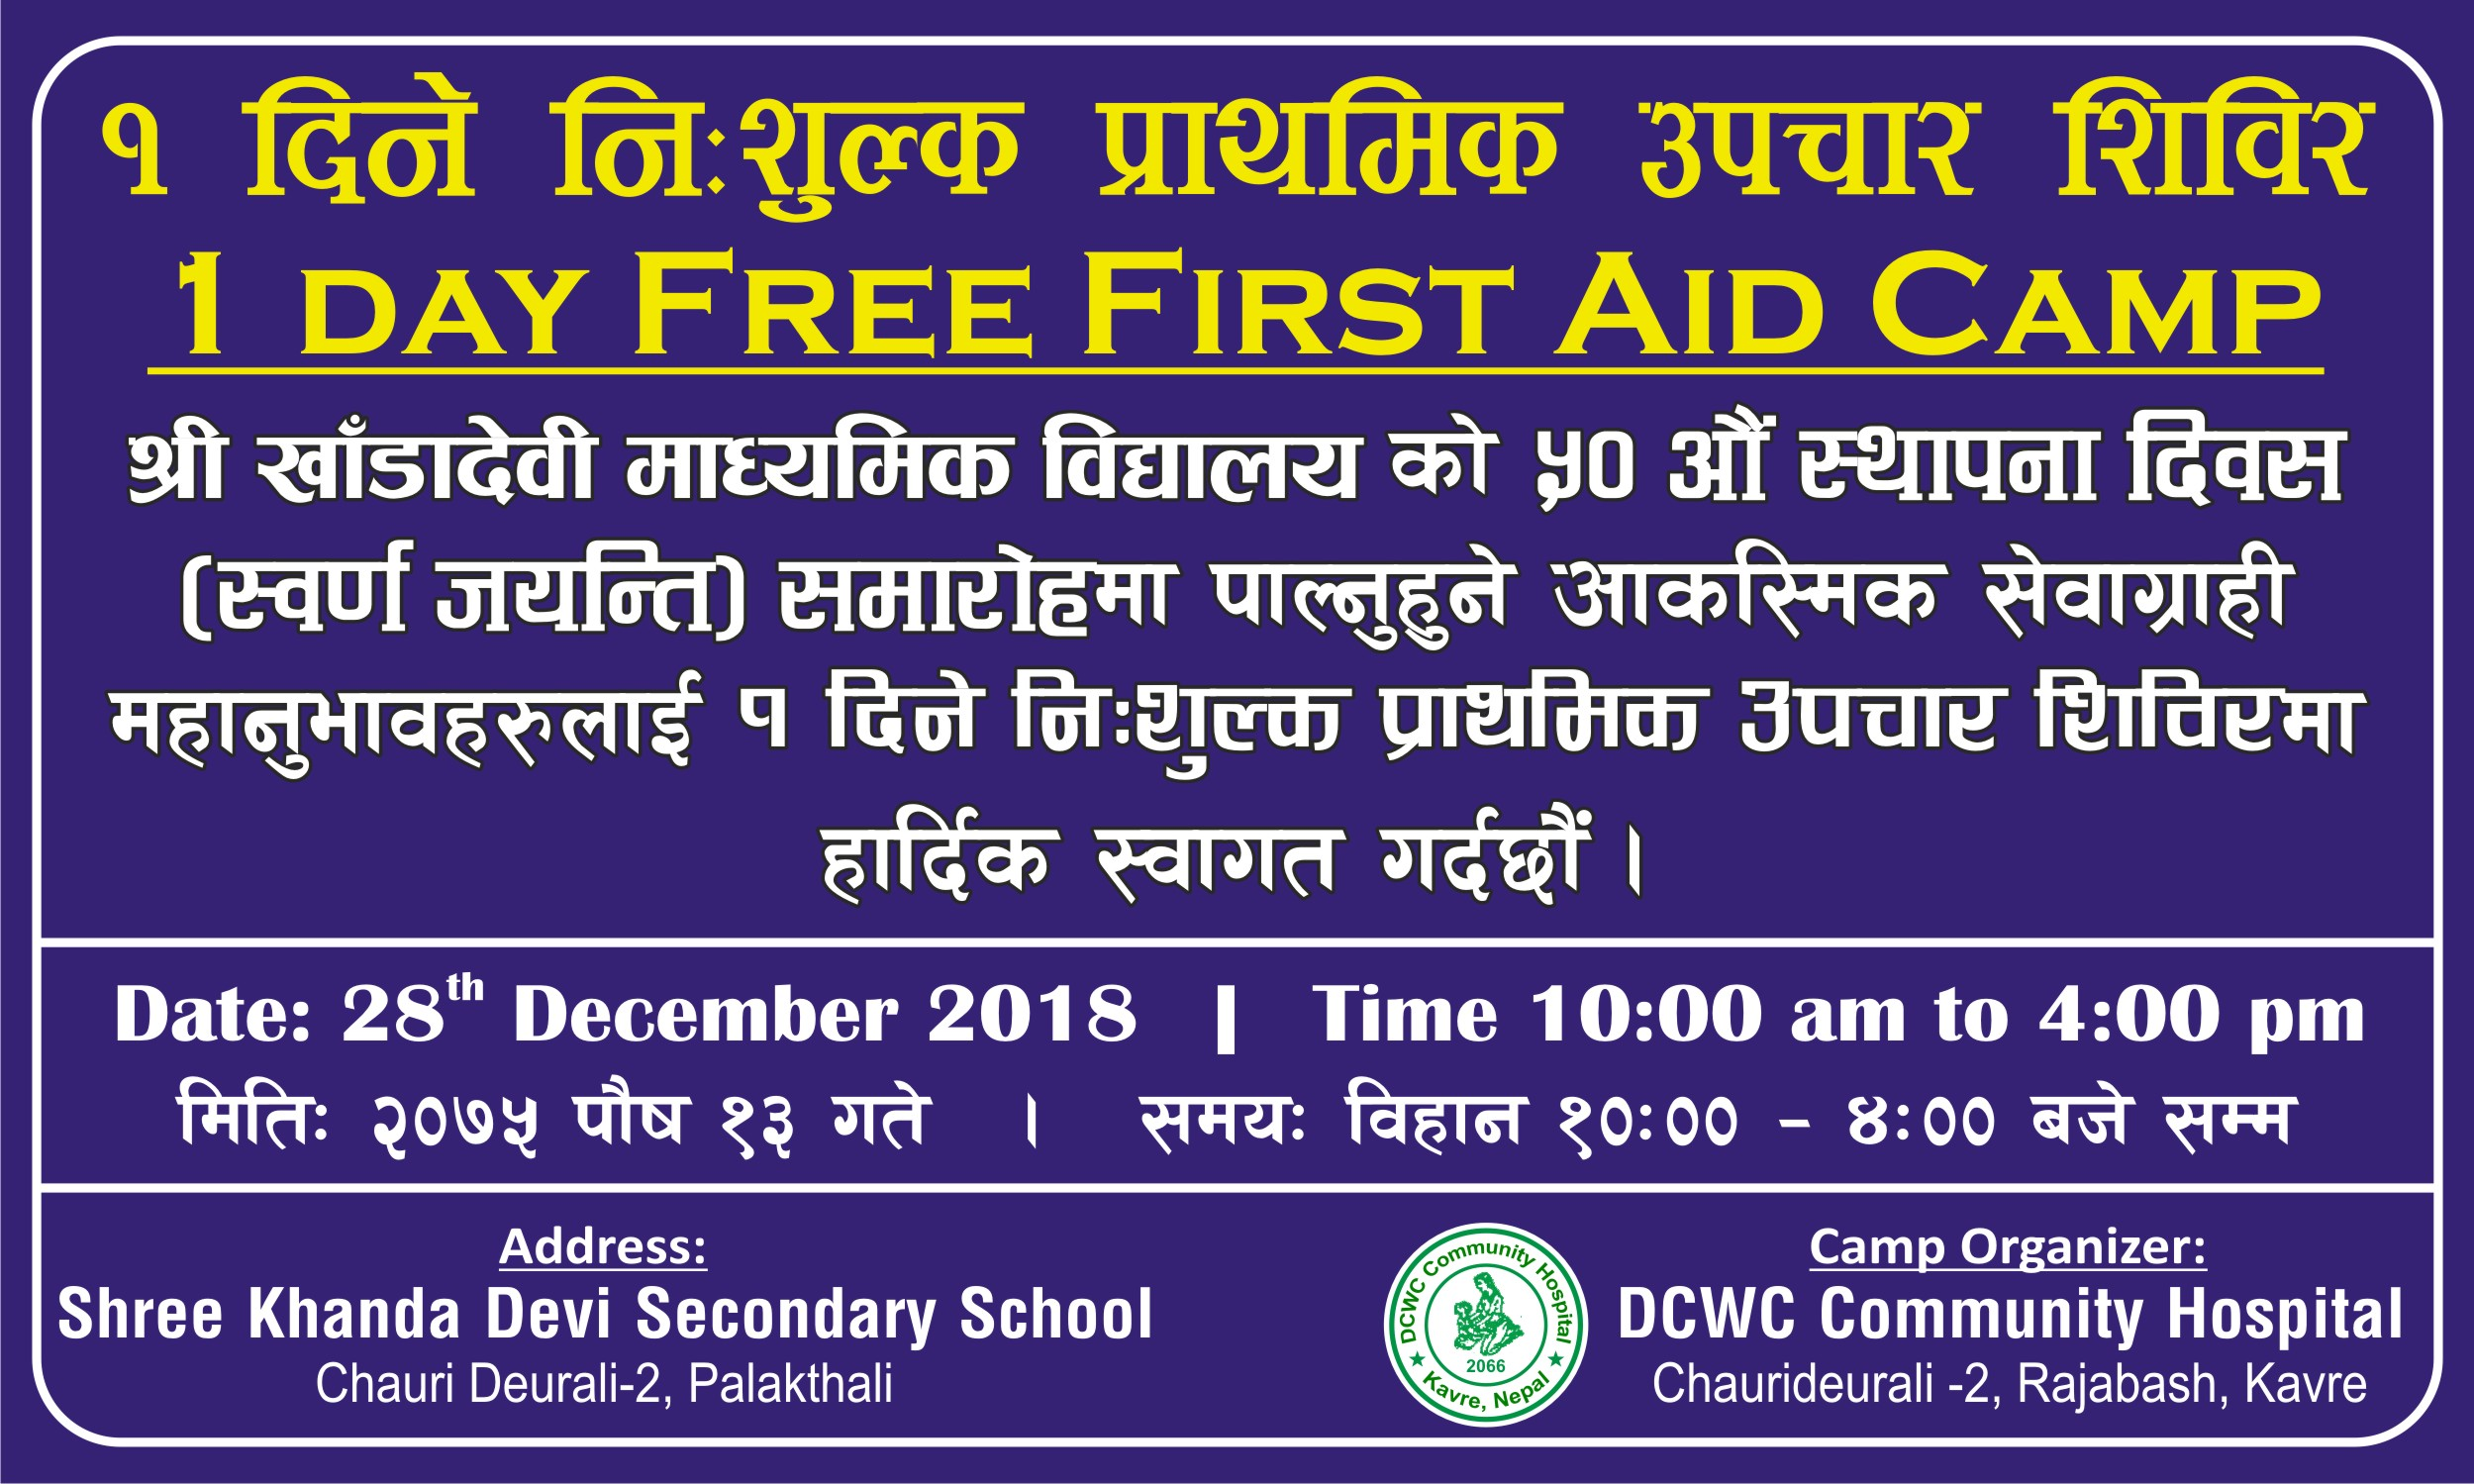 First aid Camp on 28th December 2018